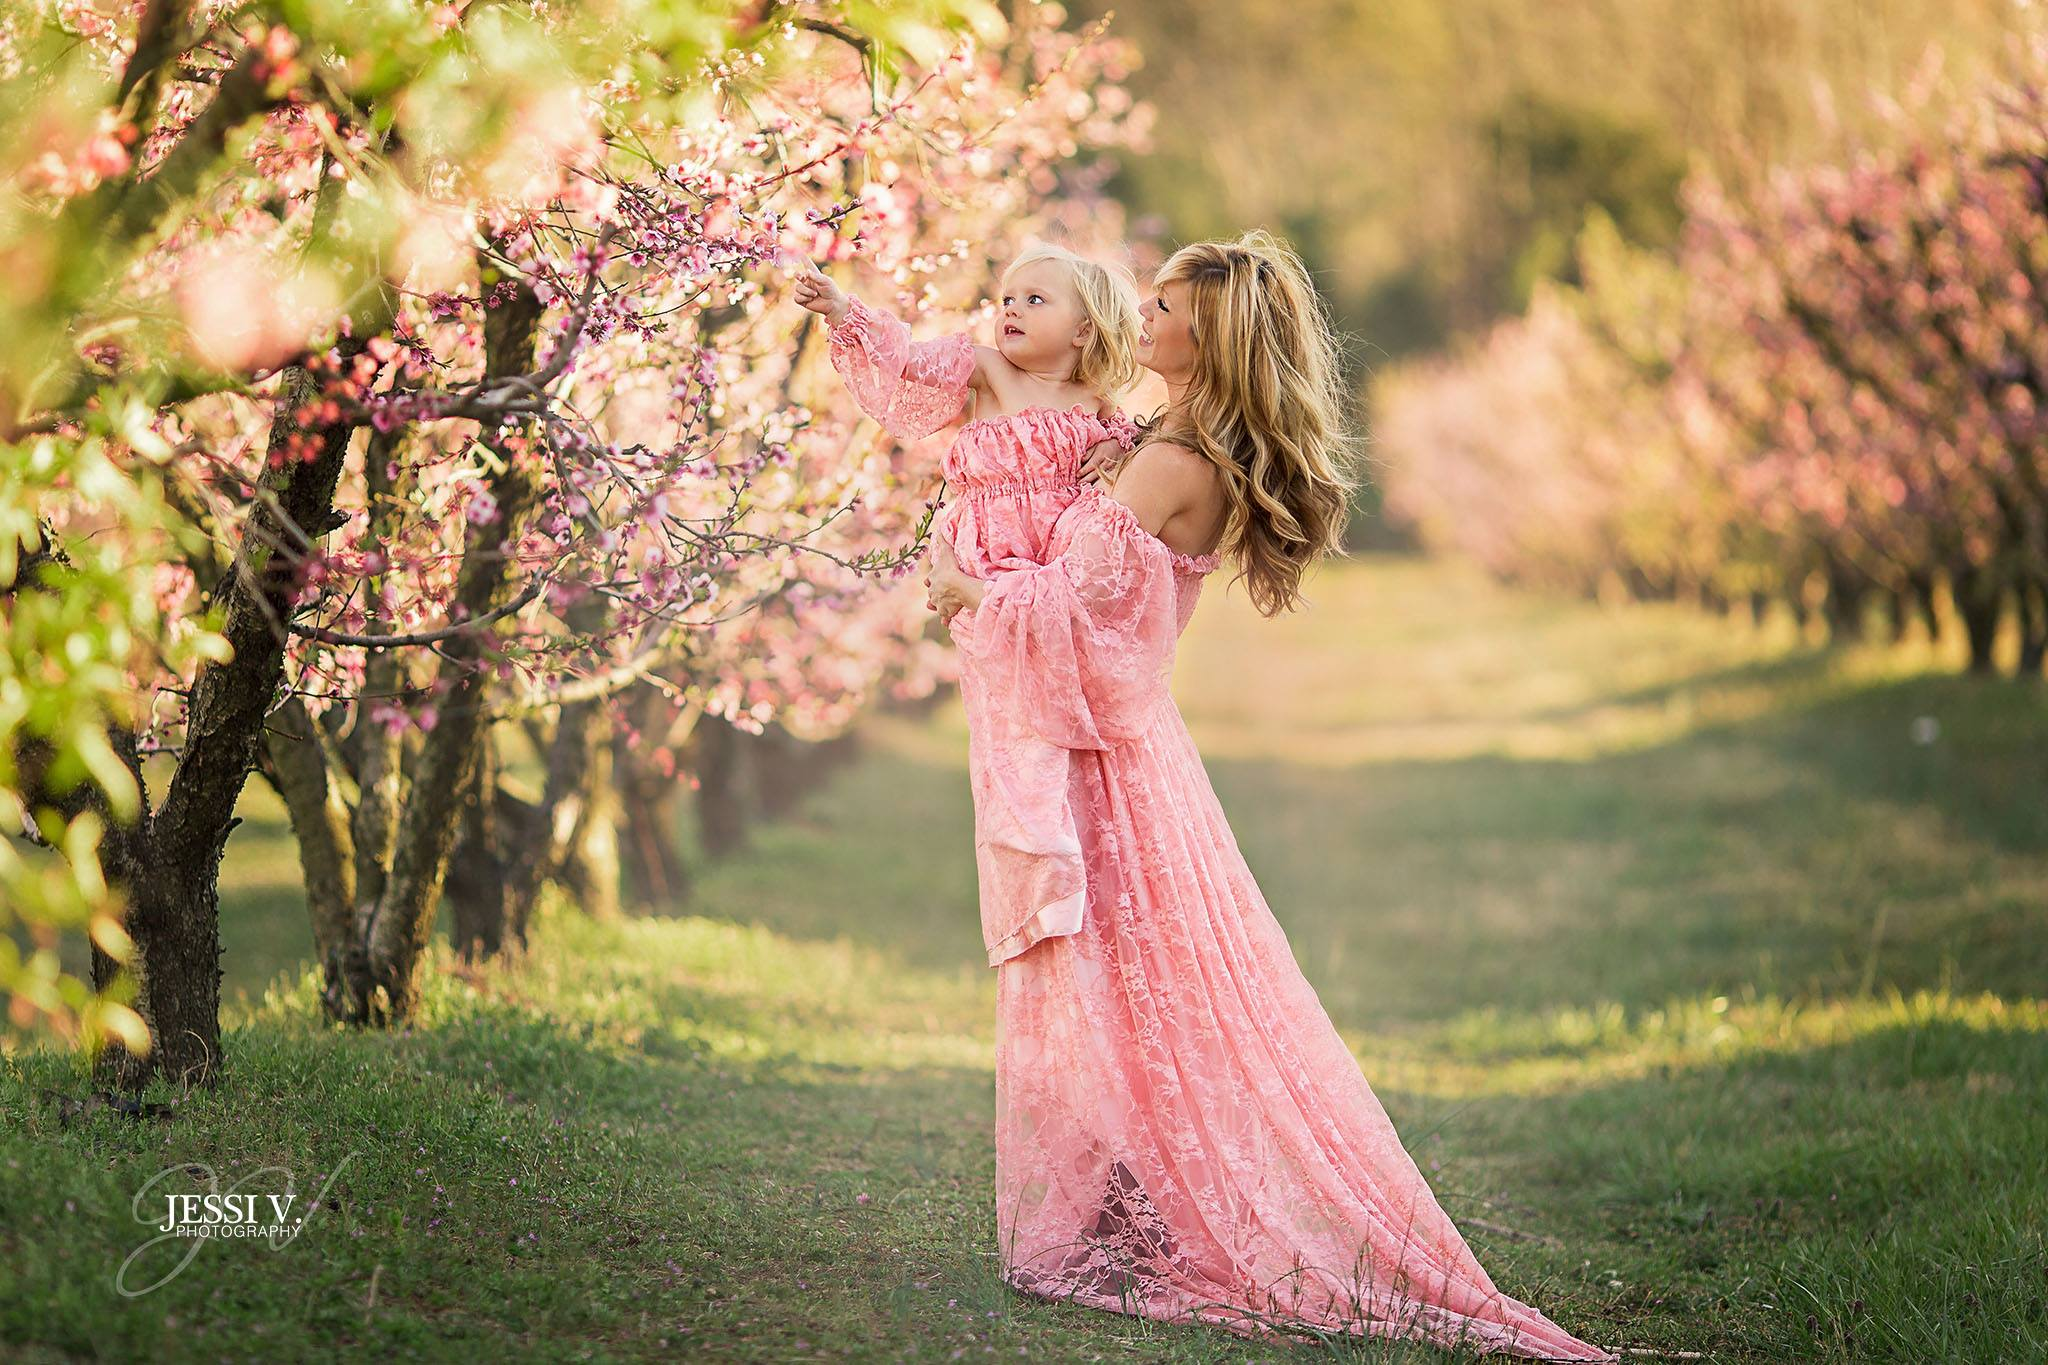 221591d1eaf13 5 Tips for Fun & Whimsical Mommy & Me Photo Sessions   Artsy Couture